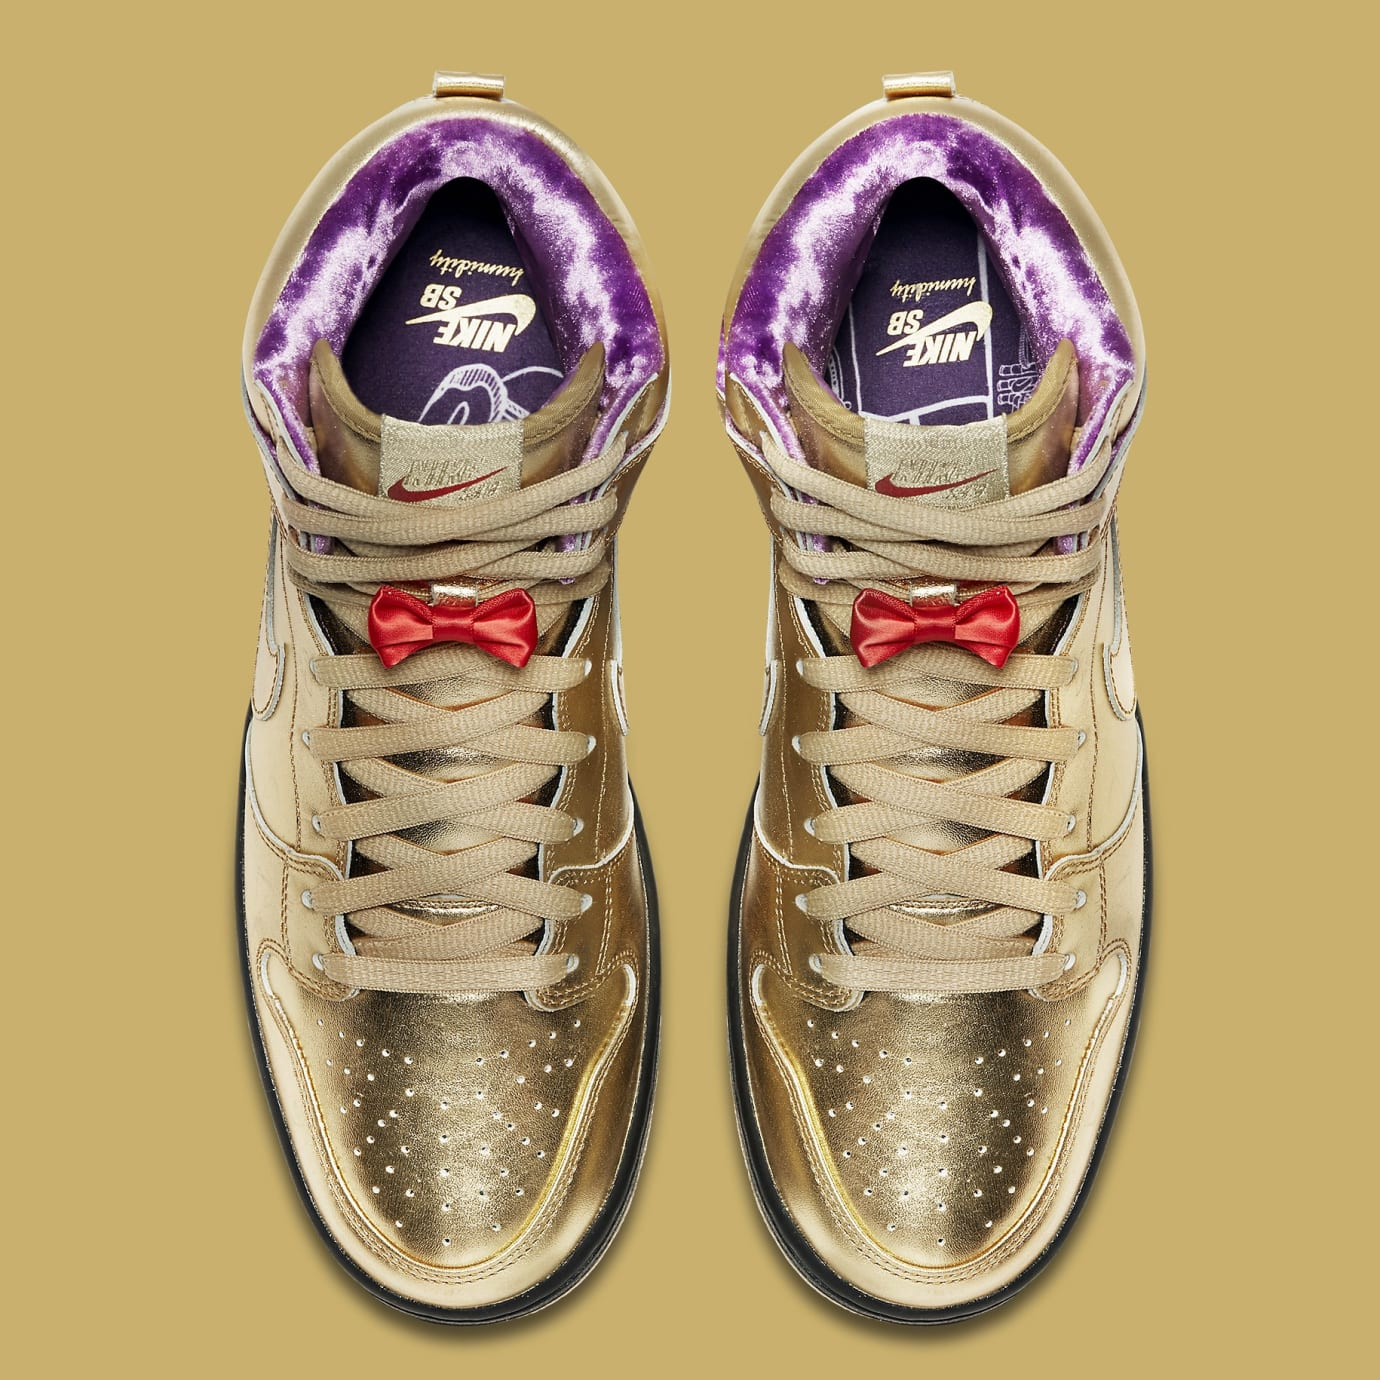 the best attitude c9bea e7c03 Humidity x Nike SB Dunk High Trumpet Tricentennial Release ...